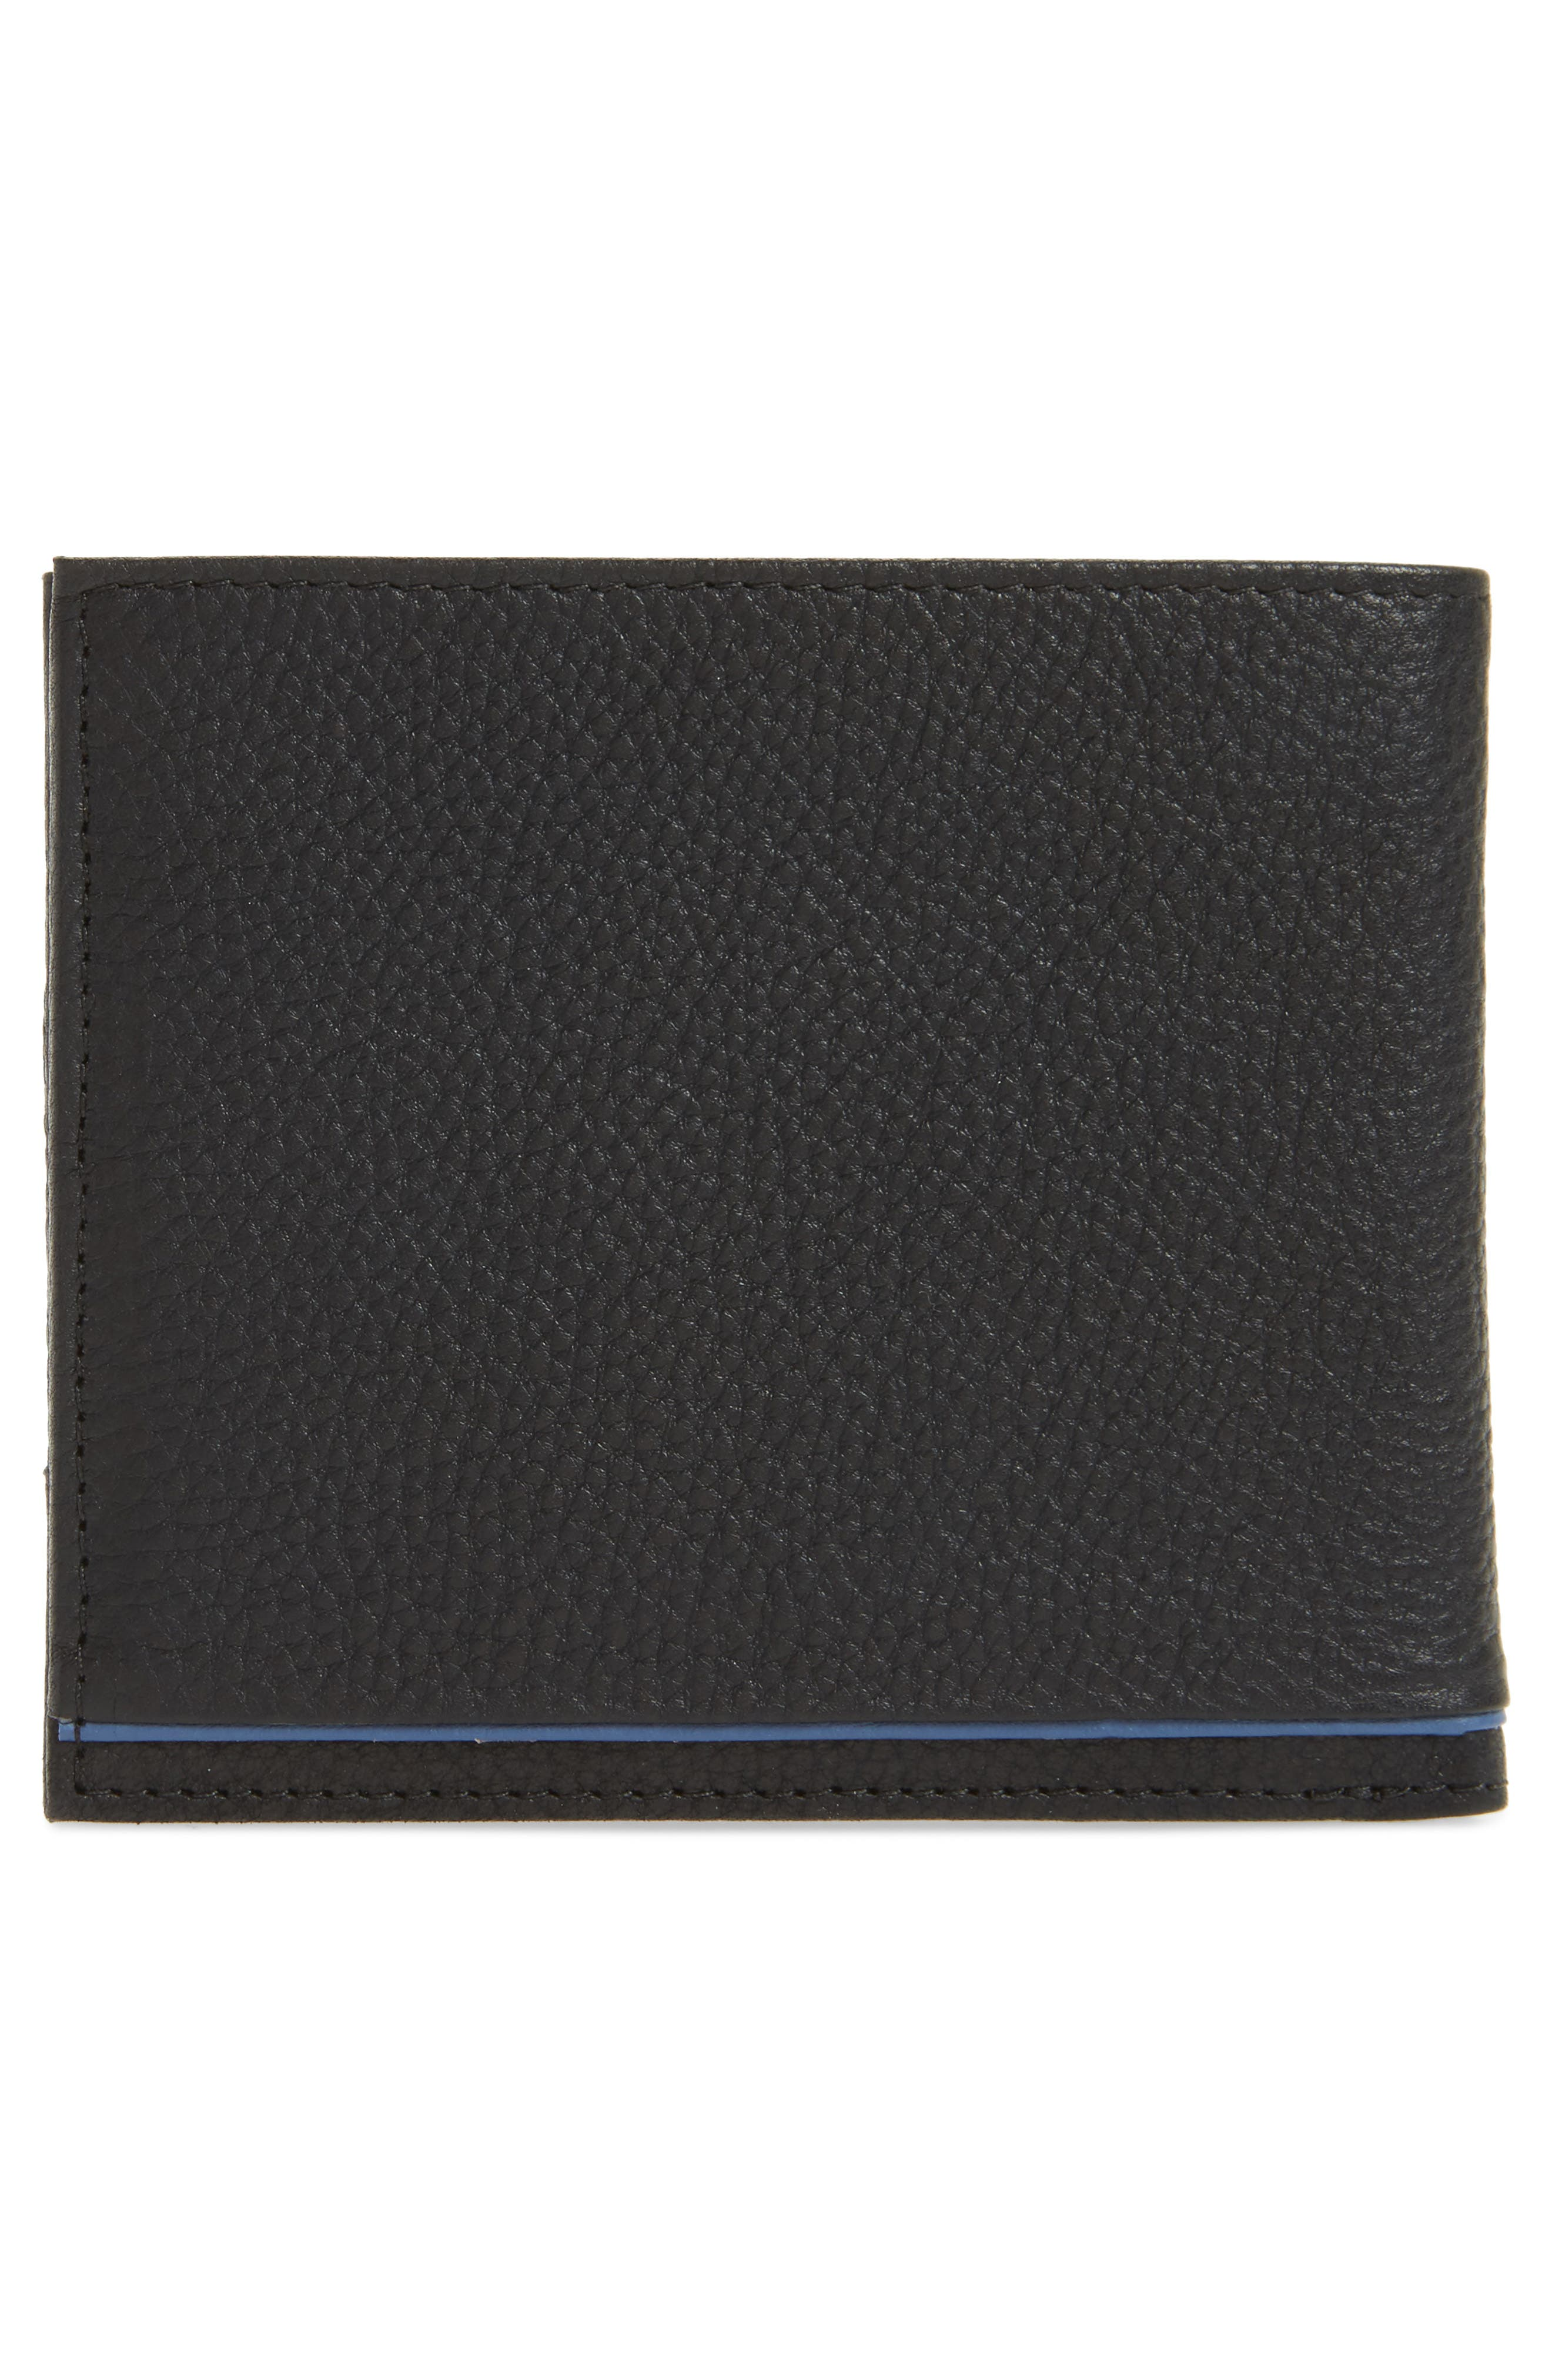 Persia Leather Wallet,                             Alternate thumbnail 3, color,                             001